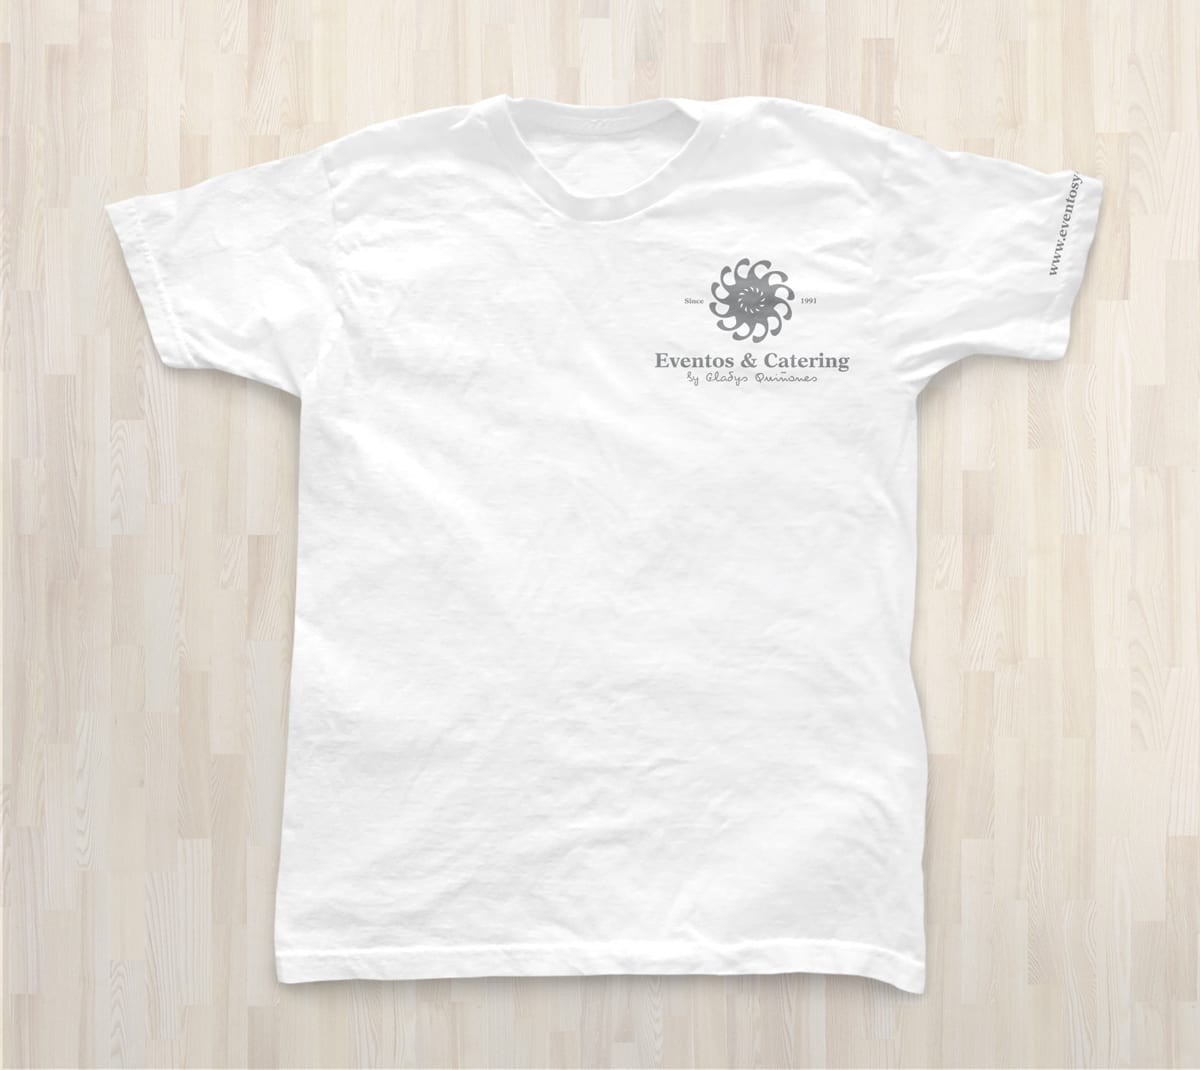 preview-front-white-t-shirt